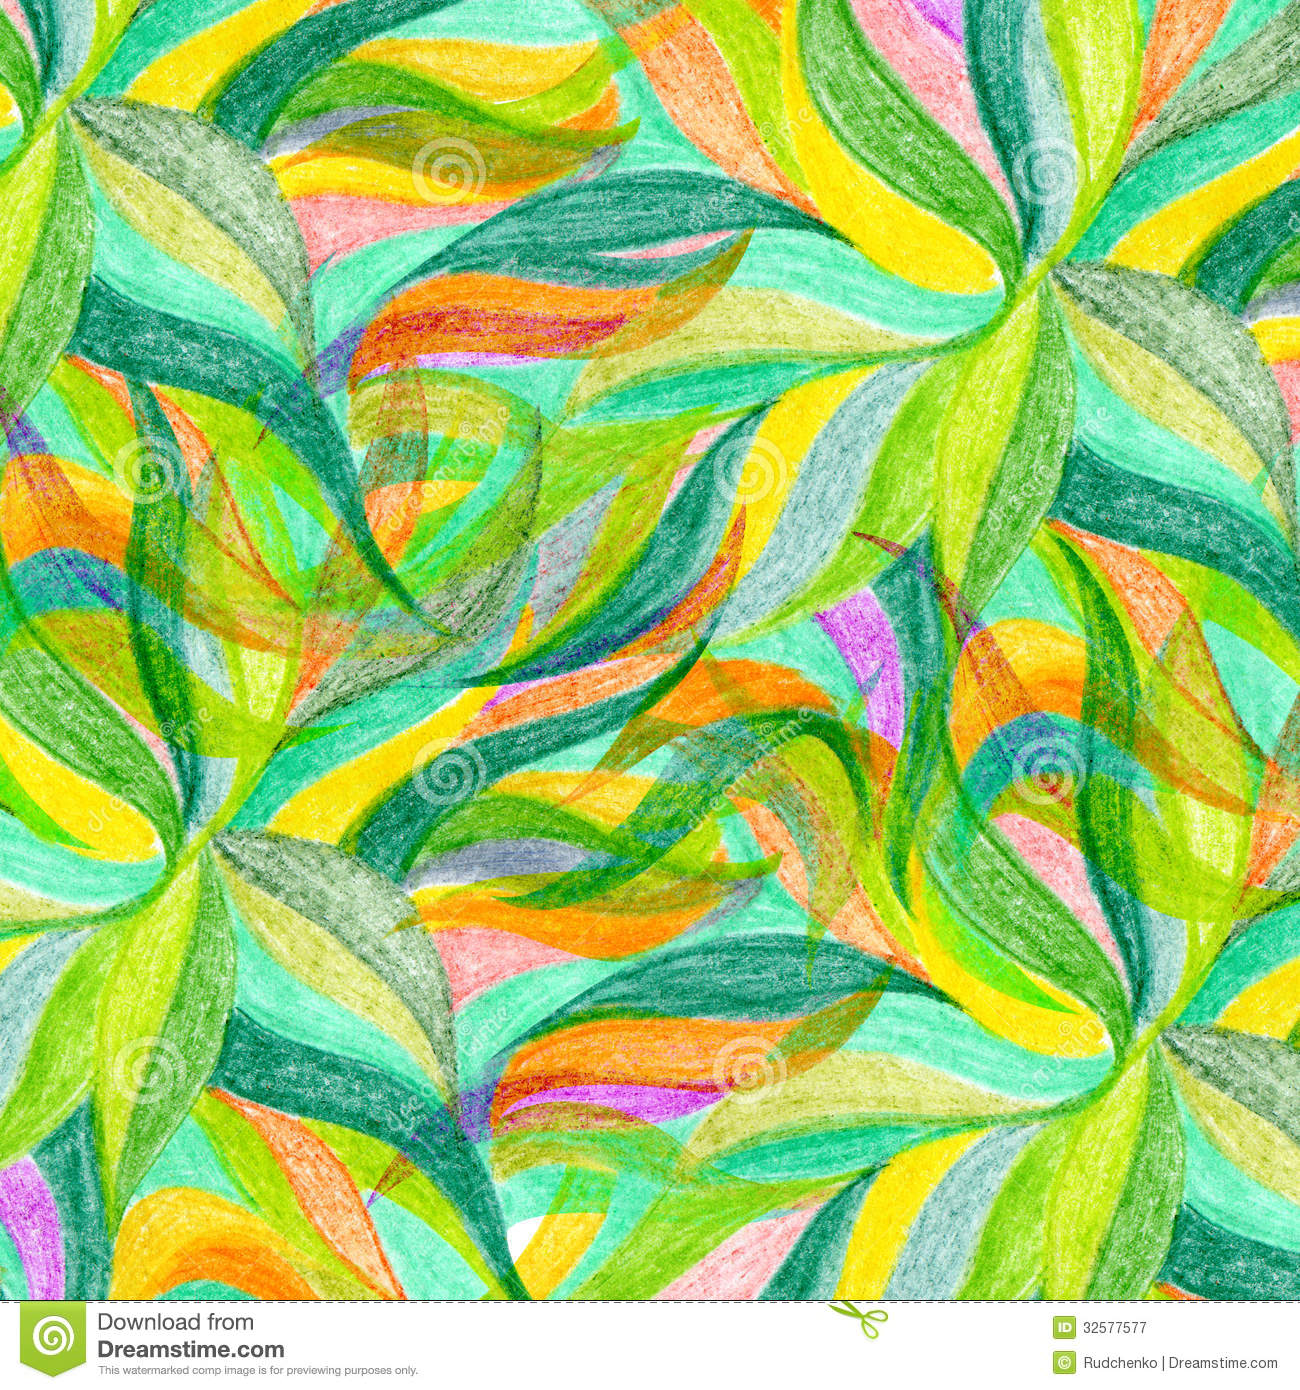 Abstract Color Pencil Draw Background Stock Image - Image of flower ...